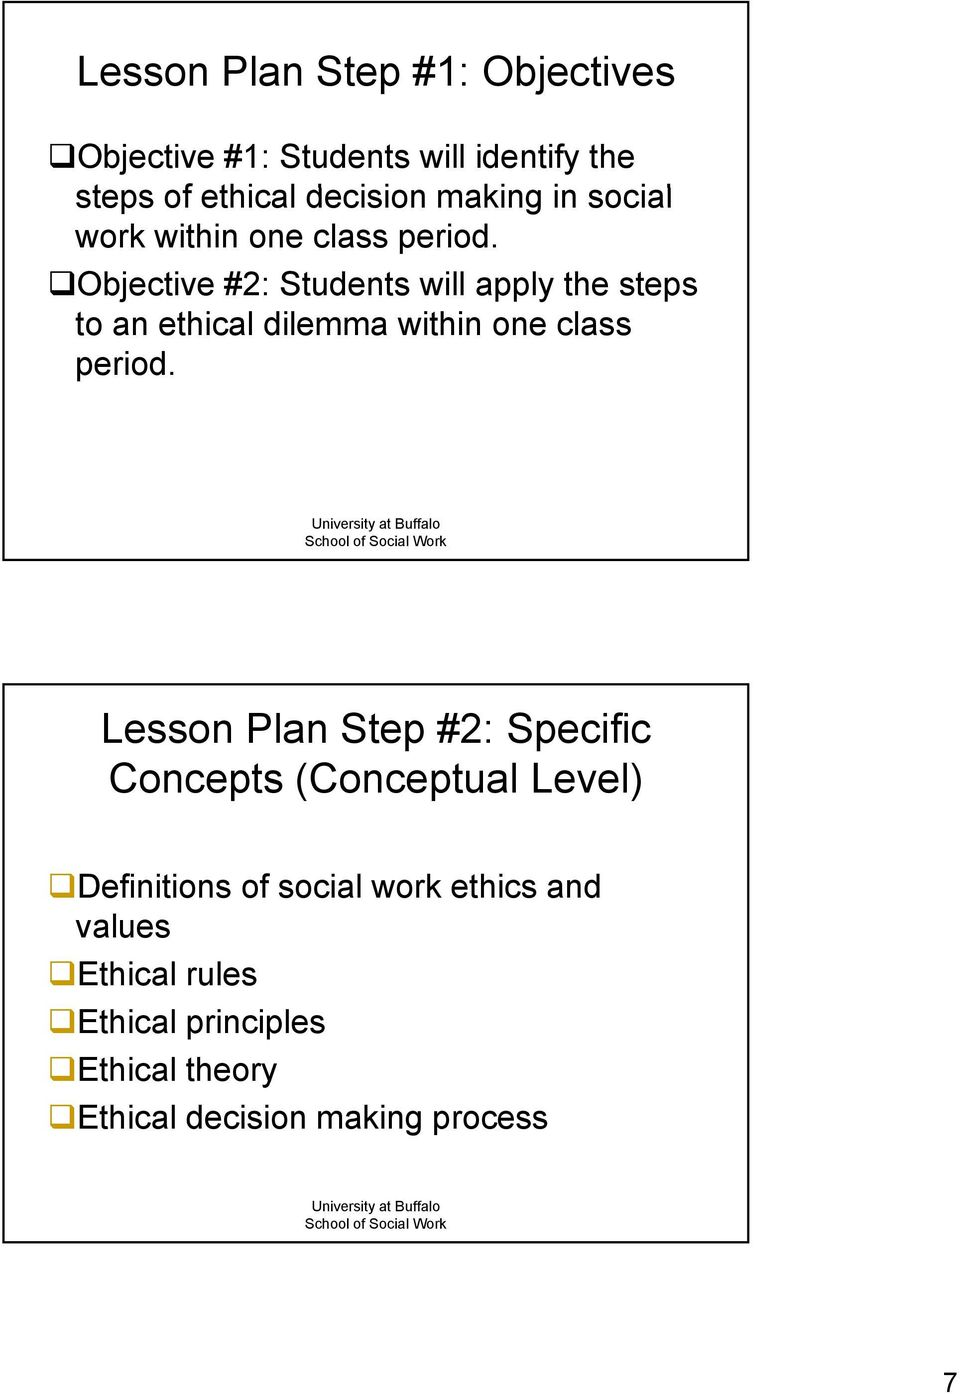 Objective #2: Students will apply the steps to an ethical dilemma within one class period.